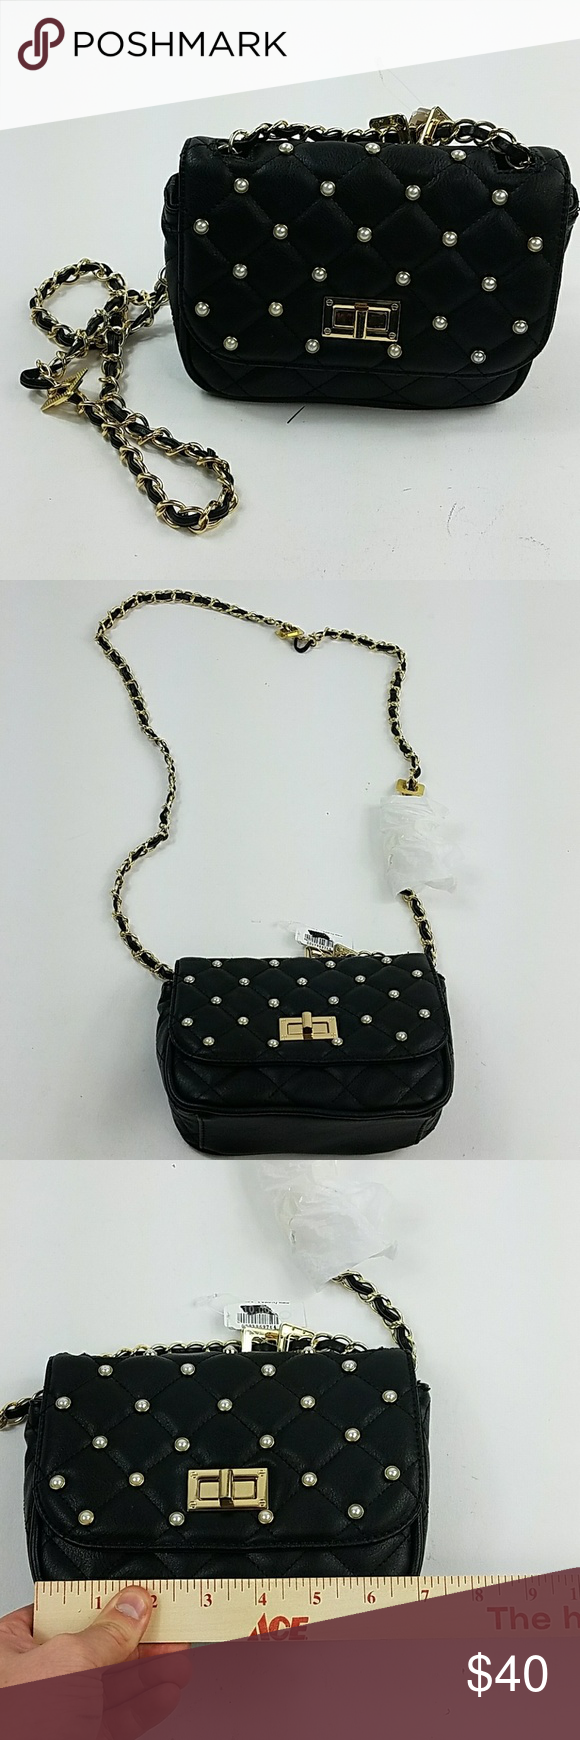 f8b4eef1d5 Women s Like New Black Aldo Crossbody Bag JJ20    PLEASE READ DESCRIPTION  AND VIEW PICTURES THOROUGHLY BEFORE PURCHASING    Gender  Female Size  one  Color  ...